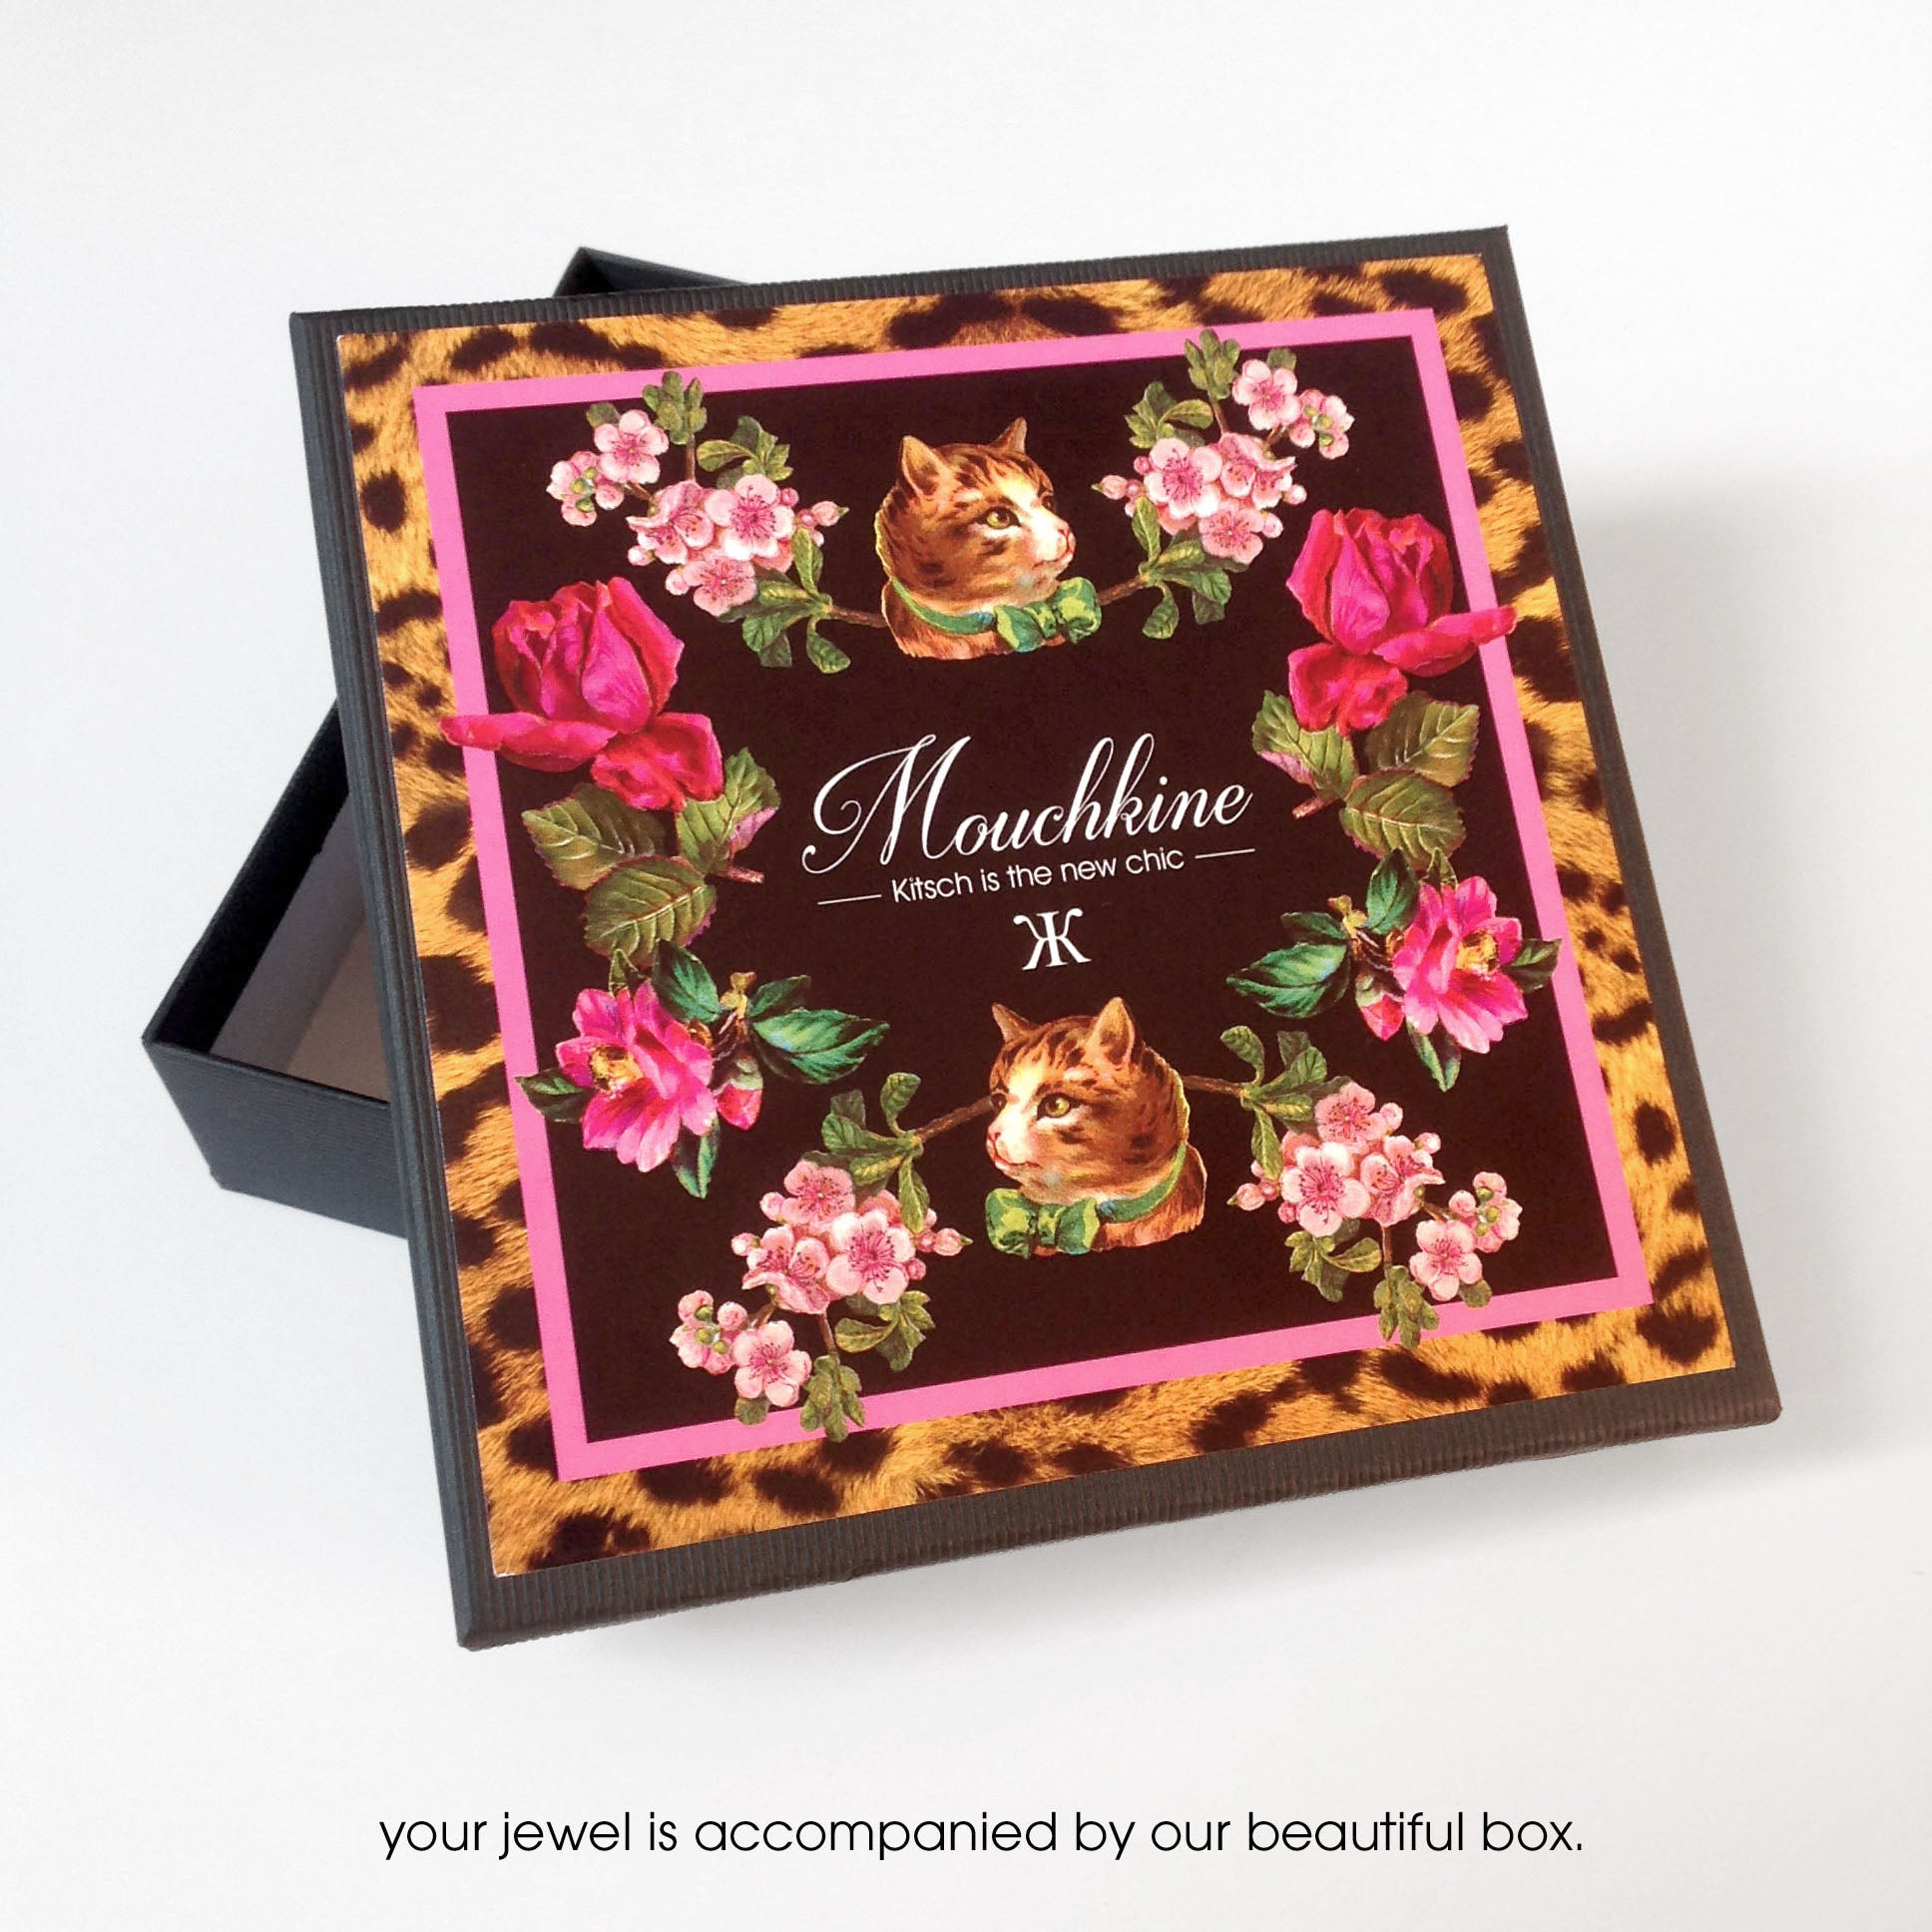 mouchkine jewelry luxury packaging made in france